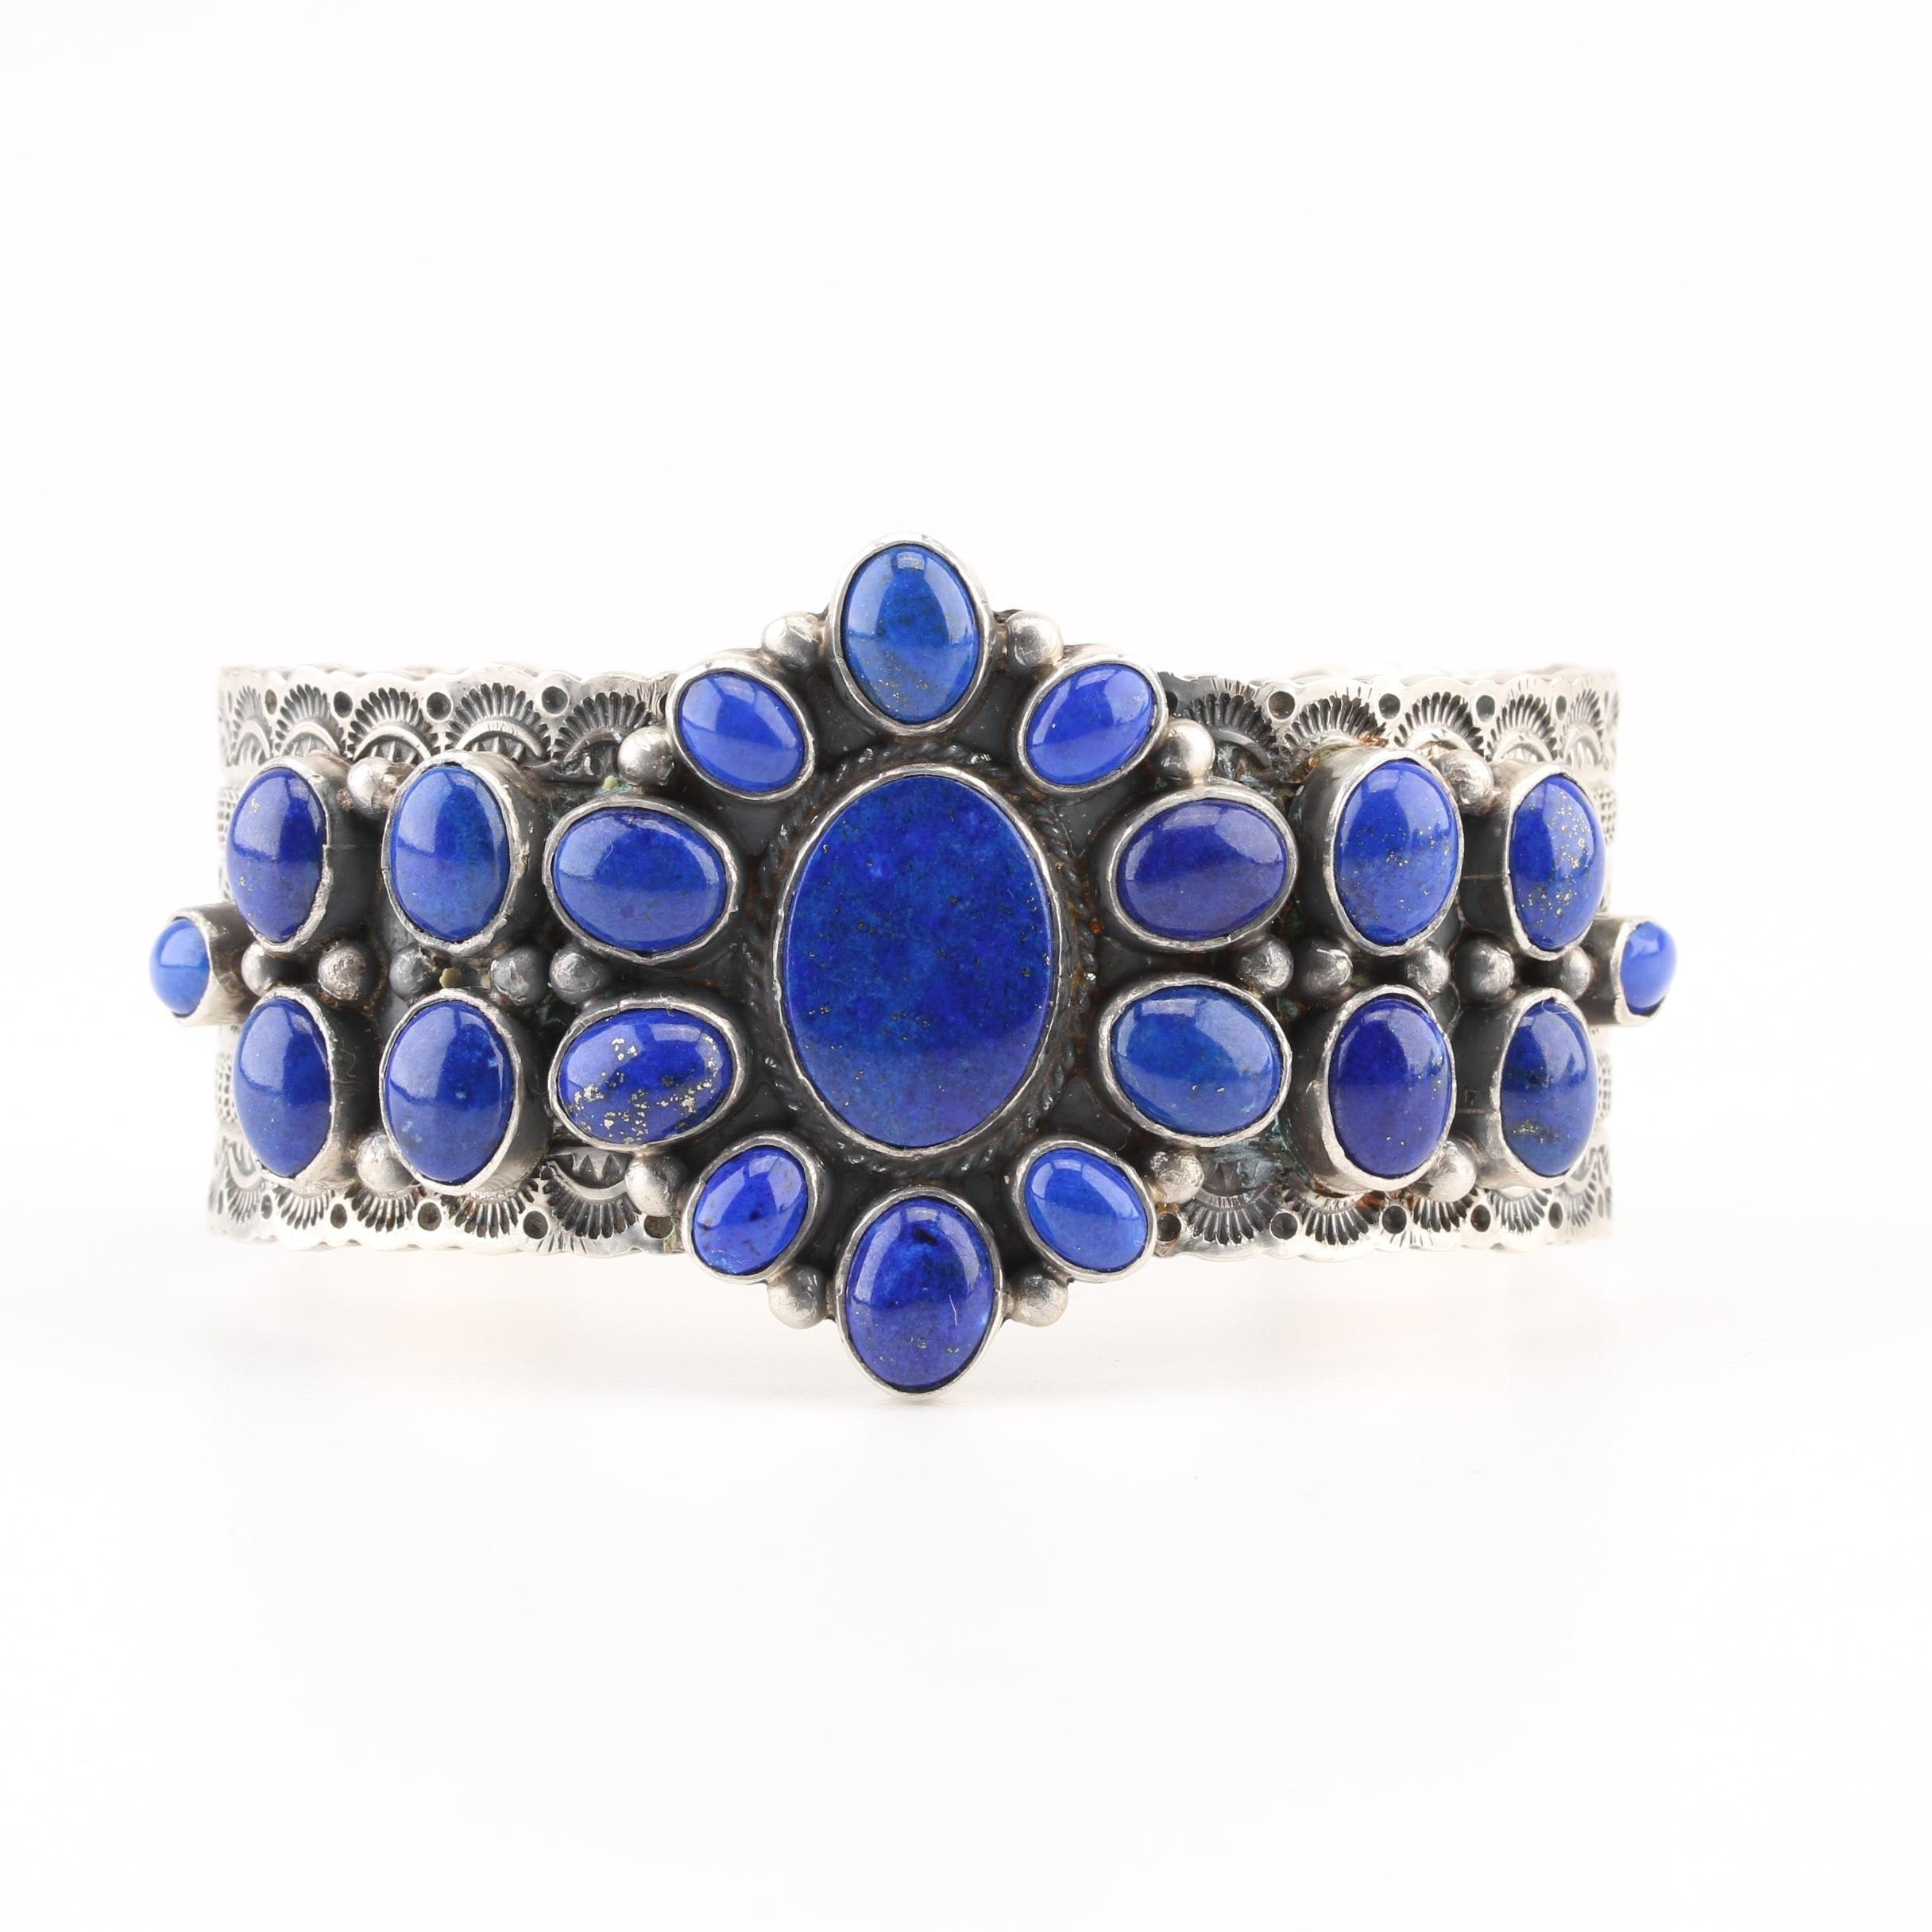 Michael and Rosita Calladitto Navajo Diné Sterling Lapis Lazuli Cuff Bracelet